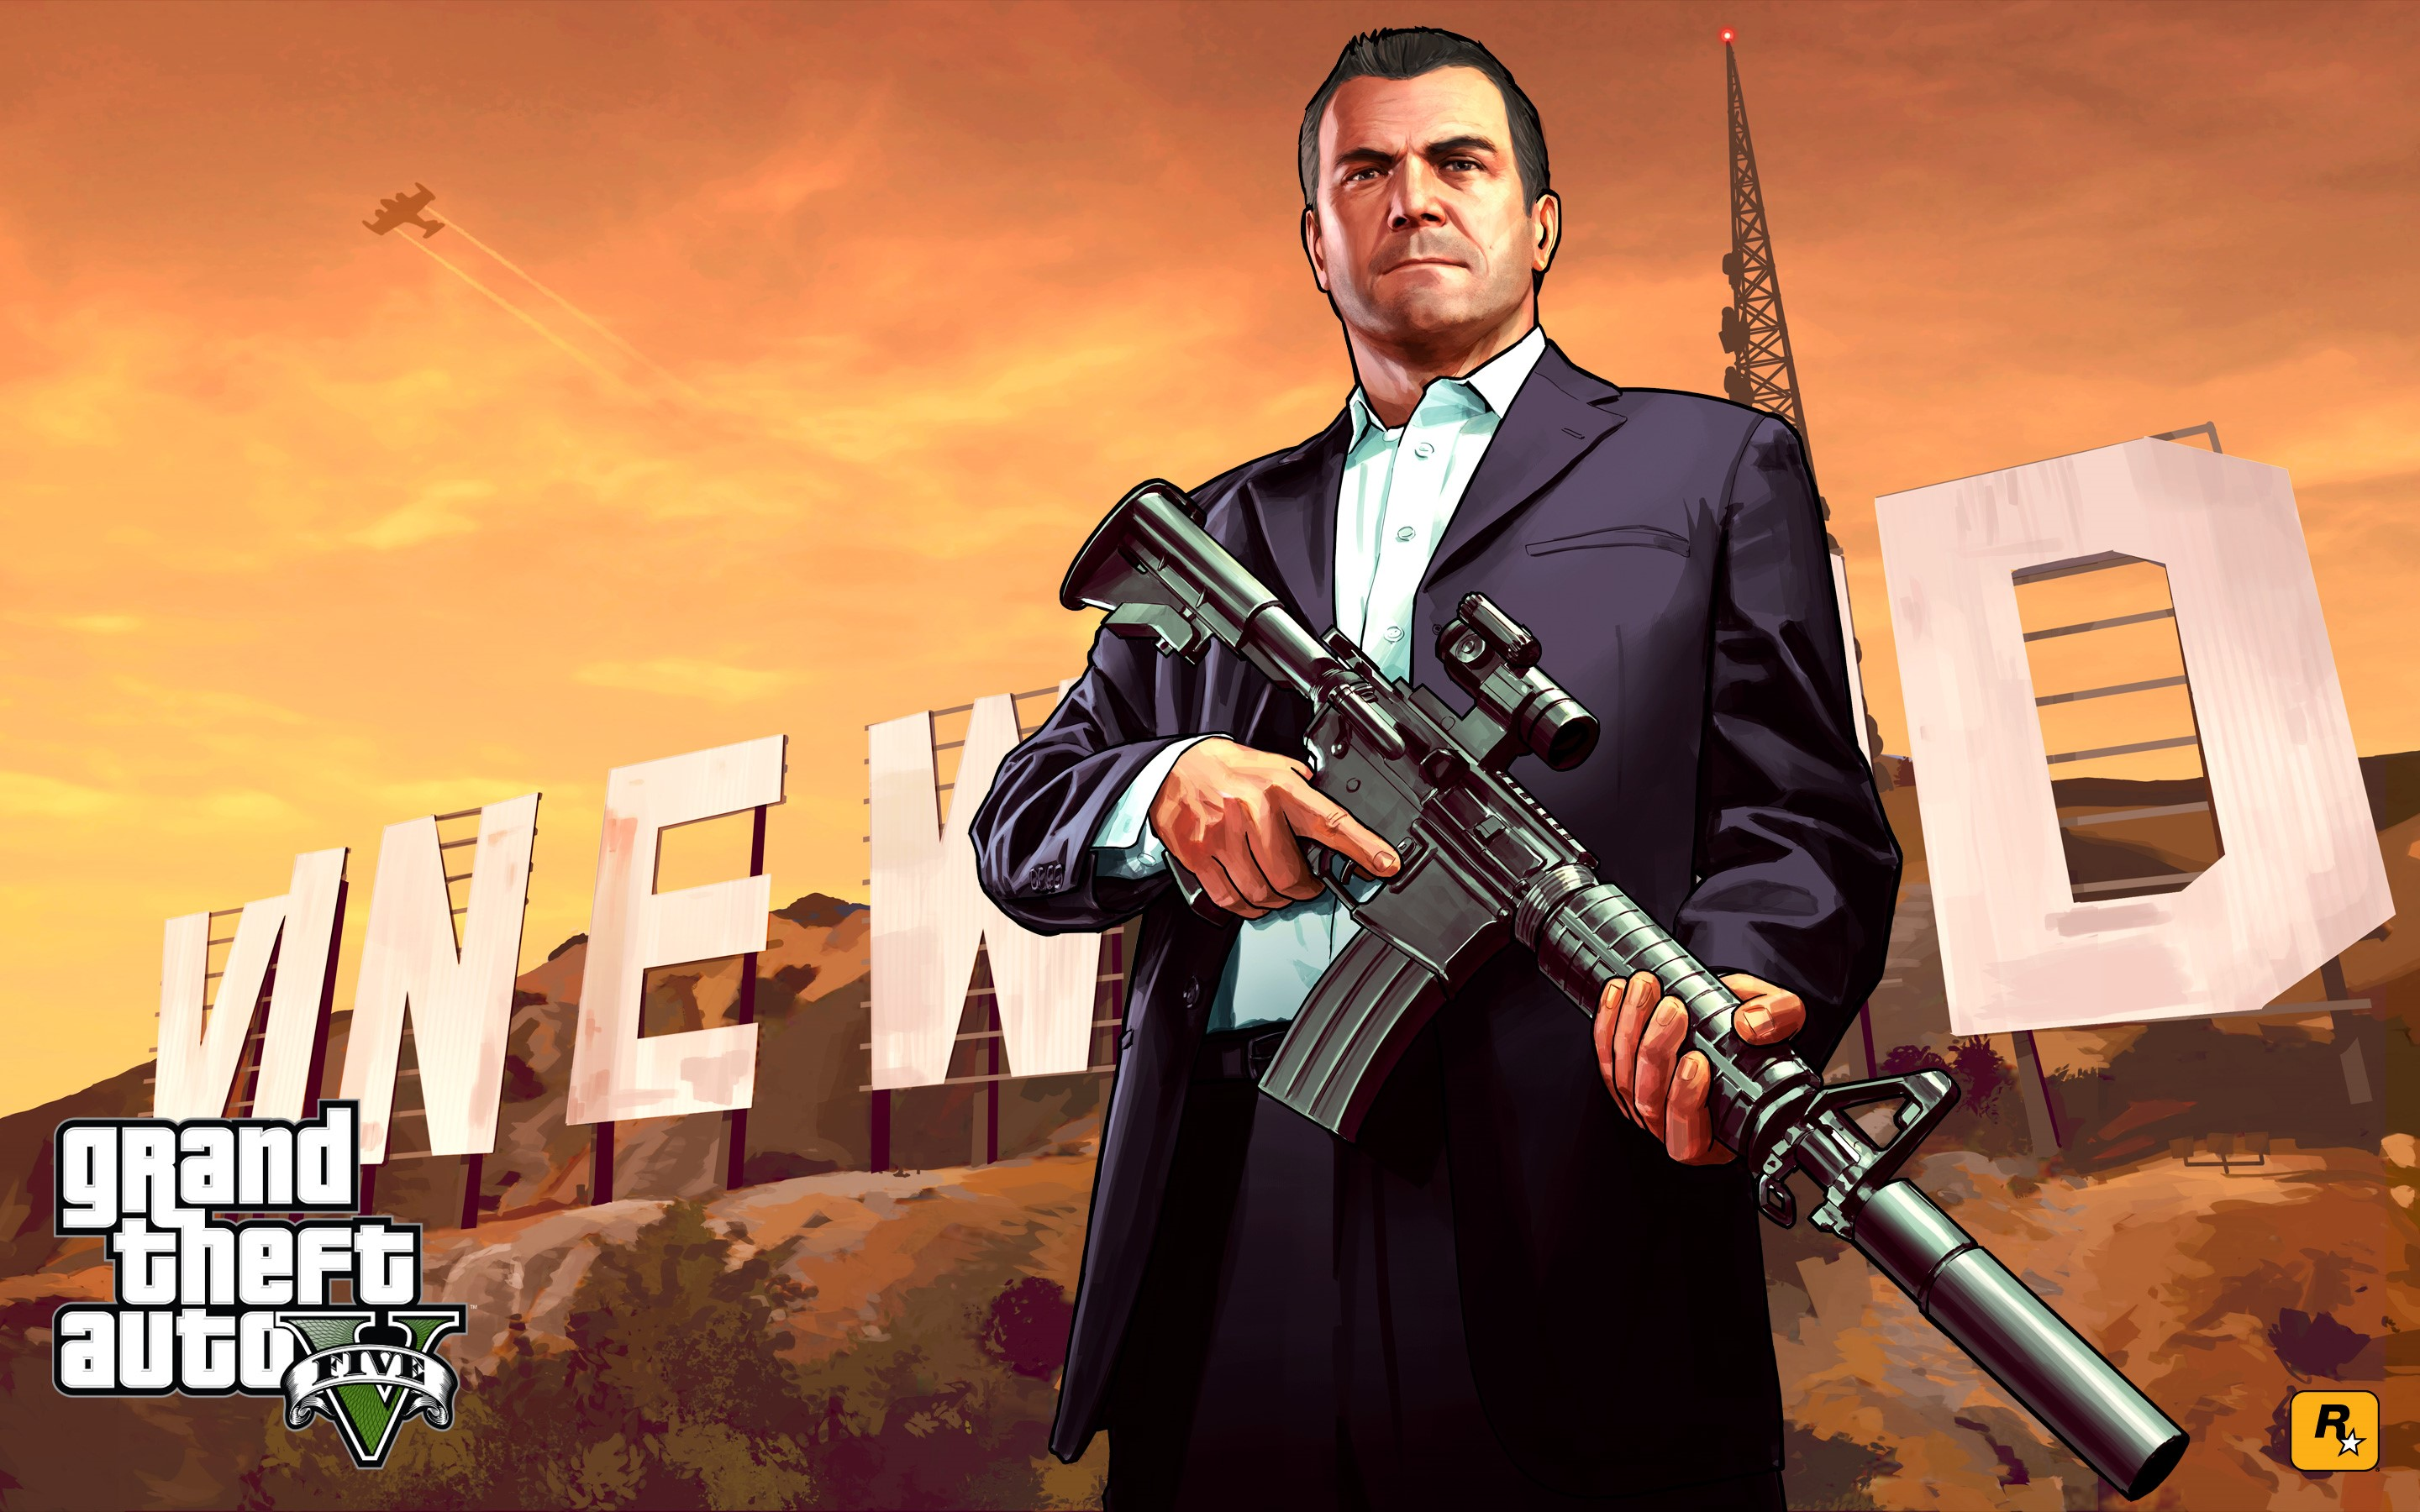 Grand Theft Auto V 5 ( Steam Gift ) Россия и страны СНГ